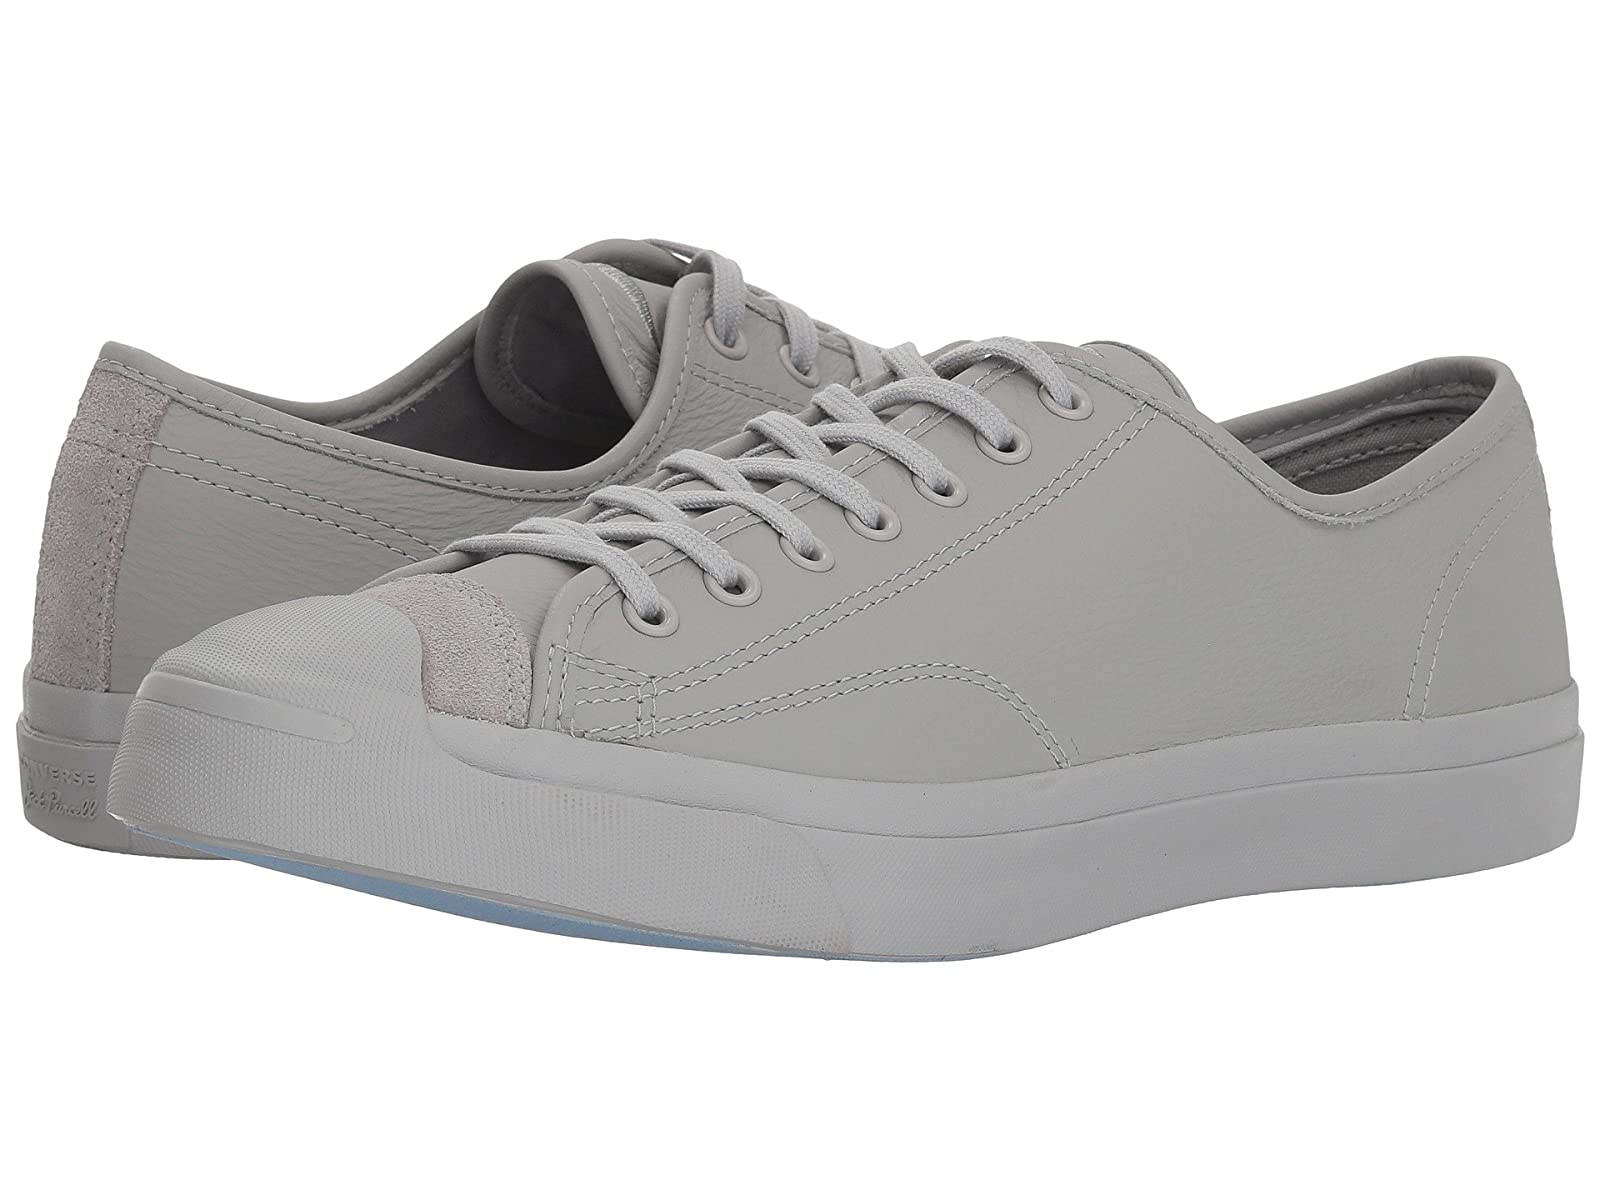 Converse Jack Purcell® Premium LeatherAtmospheric grades have affordable shoes